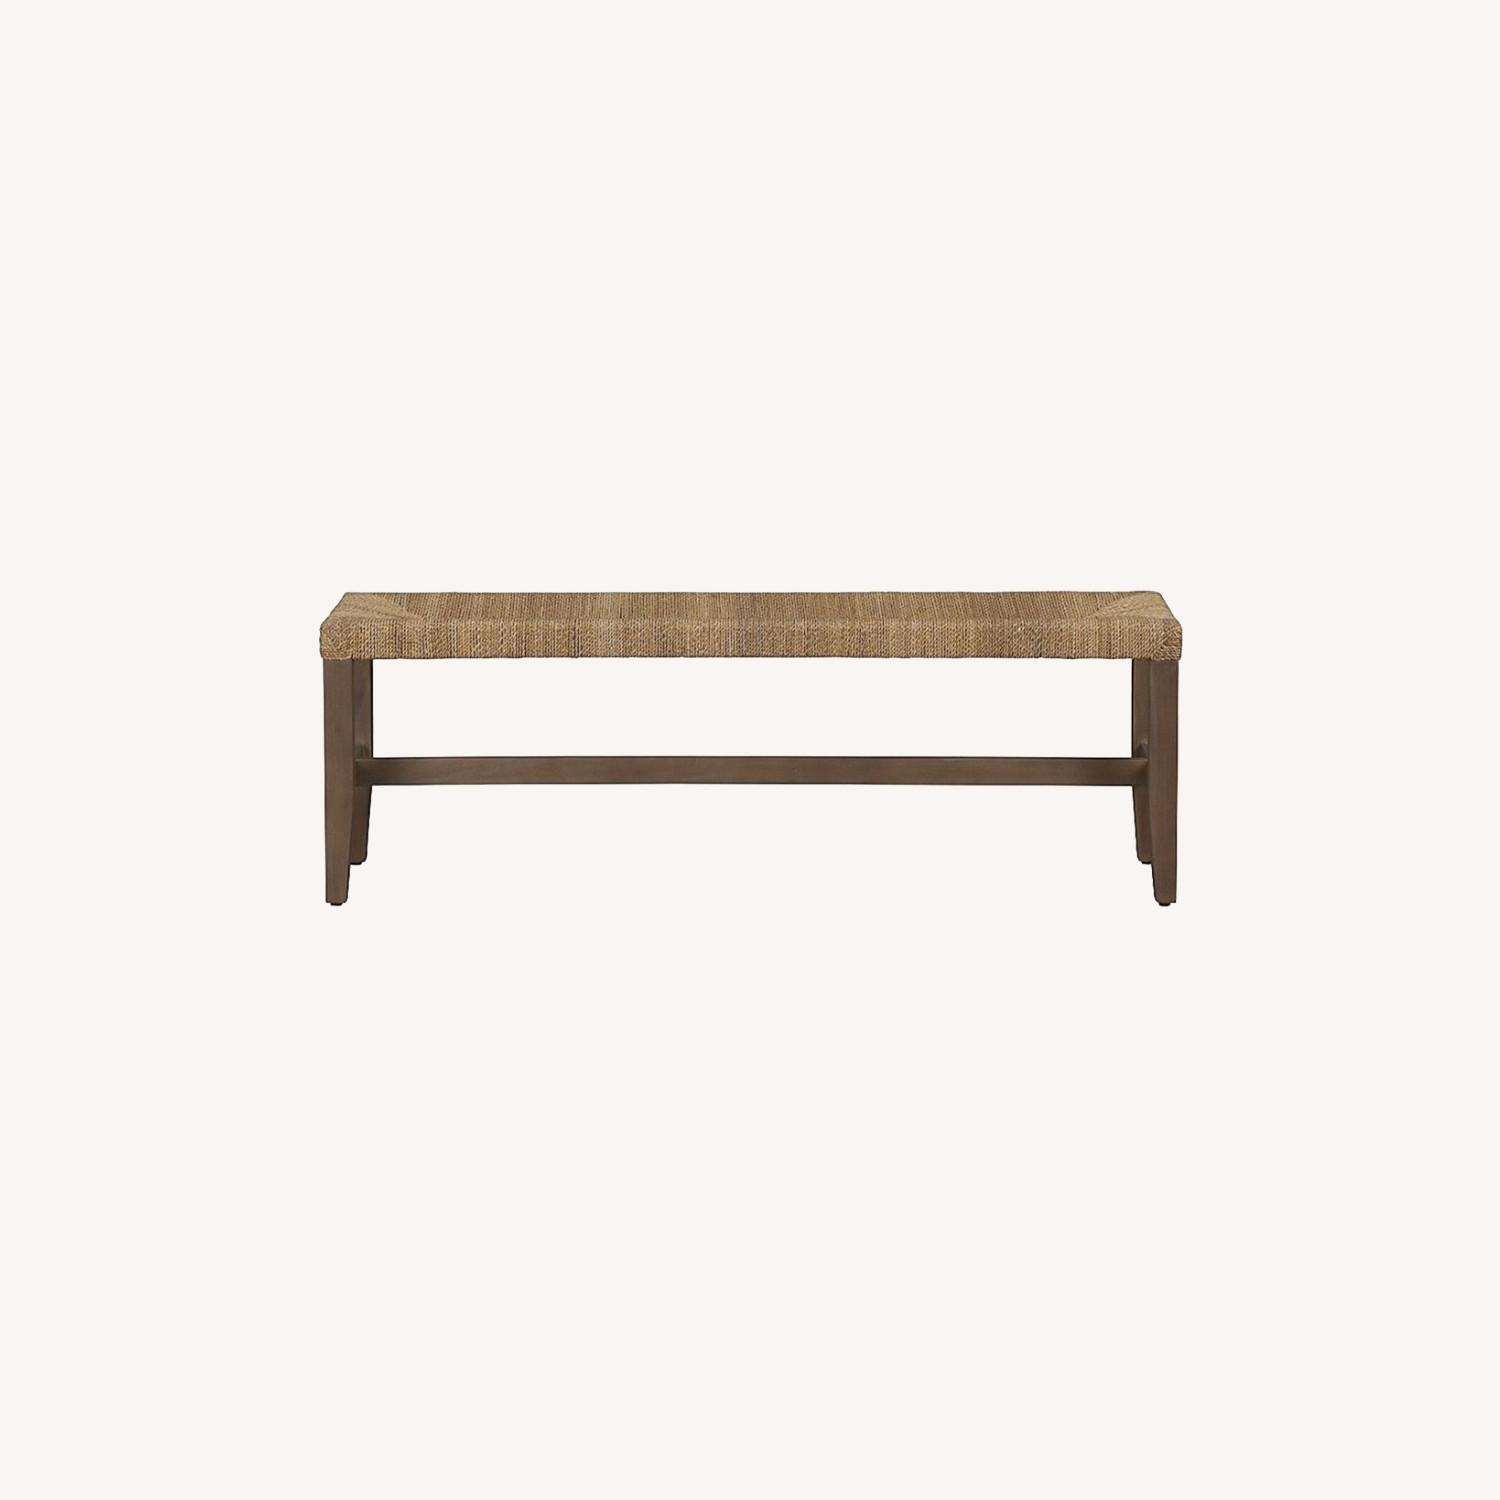 Crate & Barrel Fiji Bench - image-0